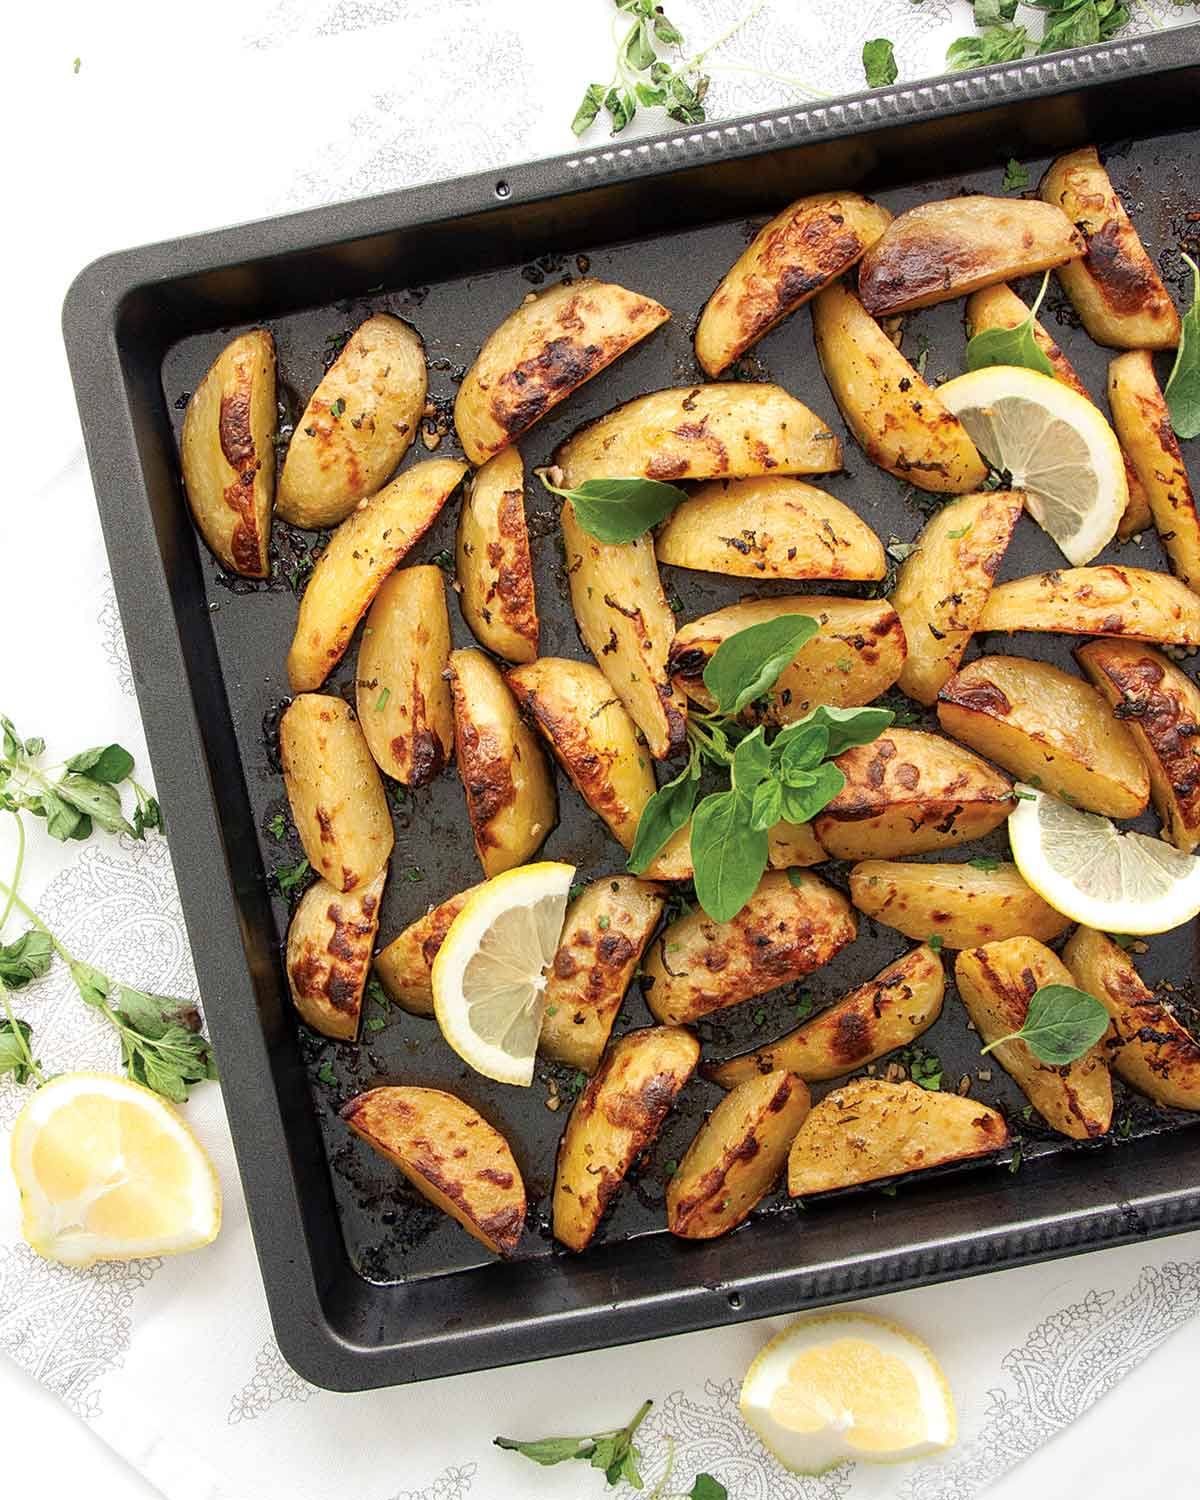 fresh out of the oven greek lemon potatoes on a baking sheet garnished with fresh oregano